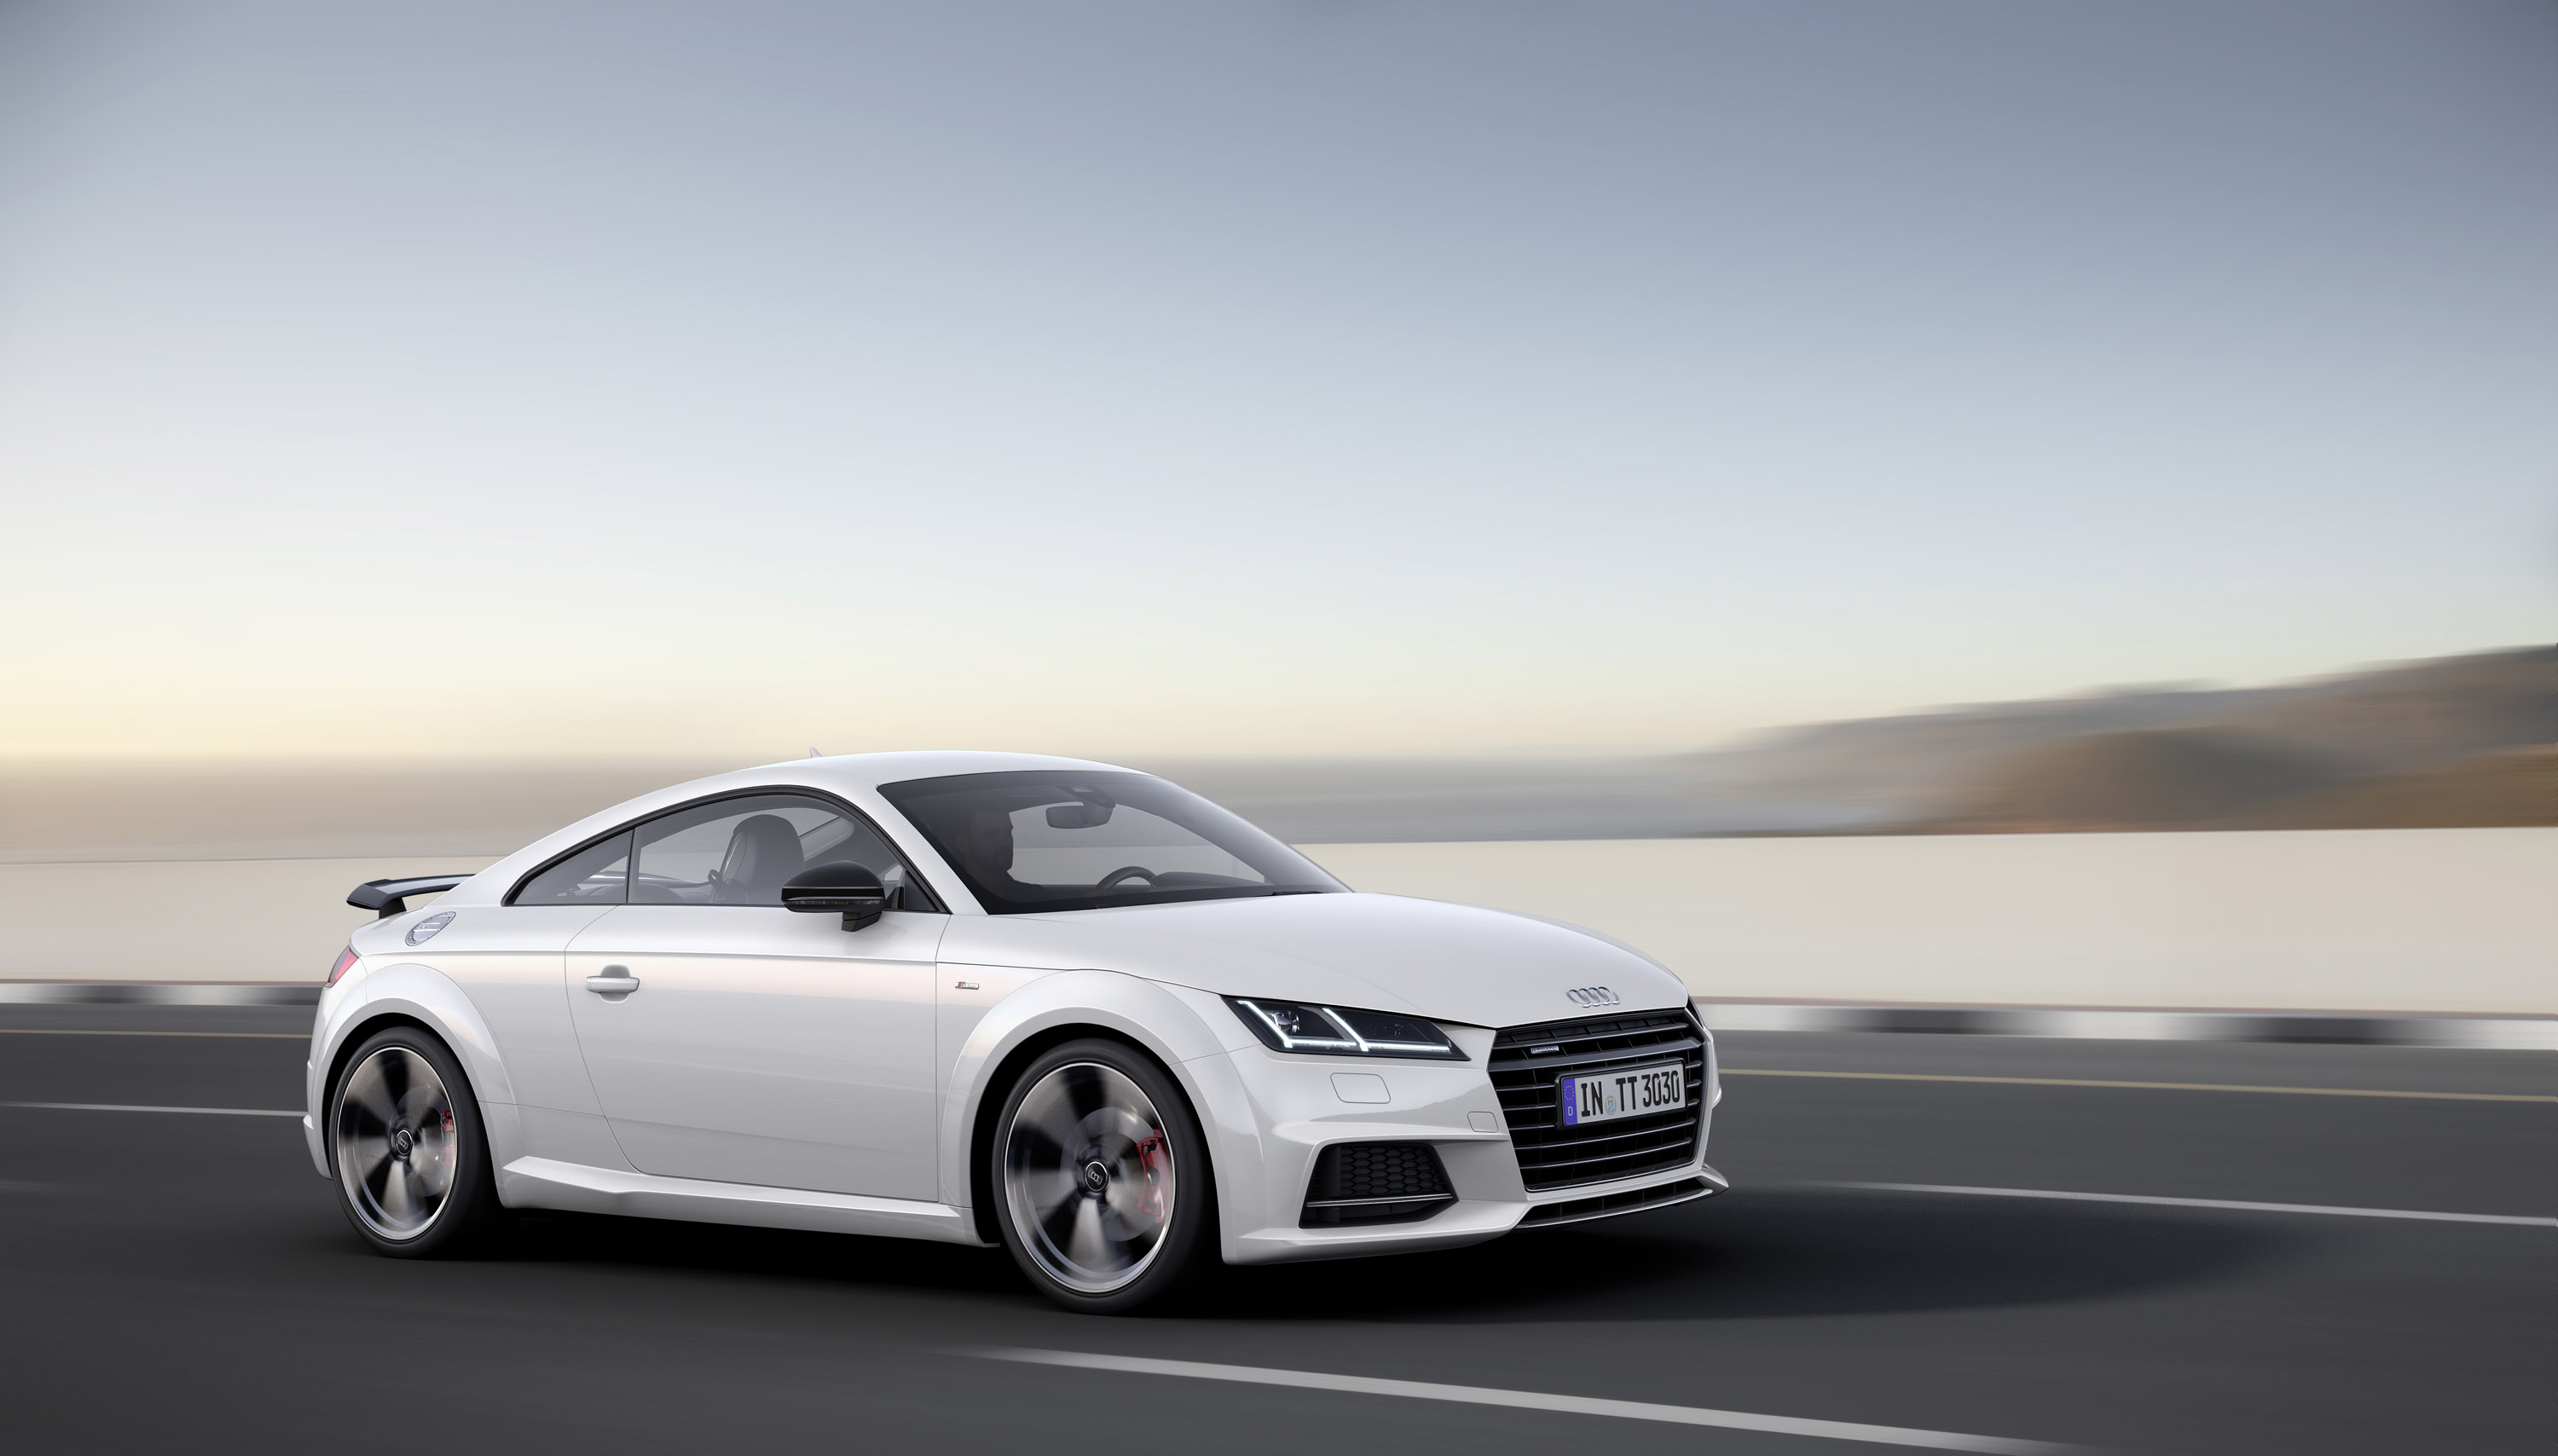 2016 Audi Tt S Line Limited Edition Comes To Rule The Streets